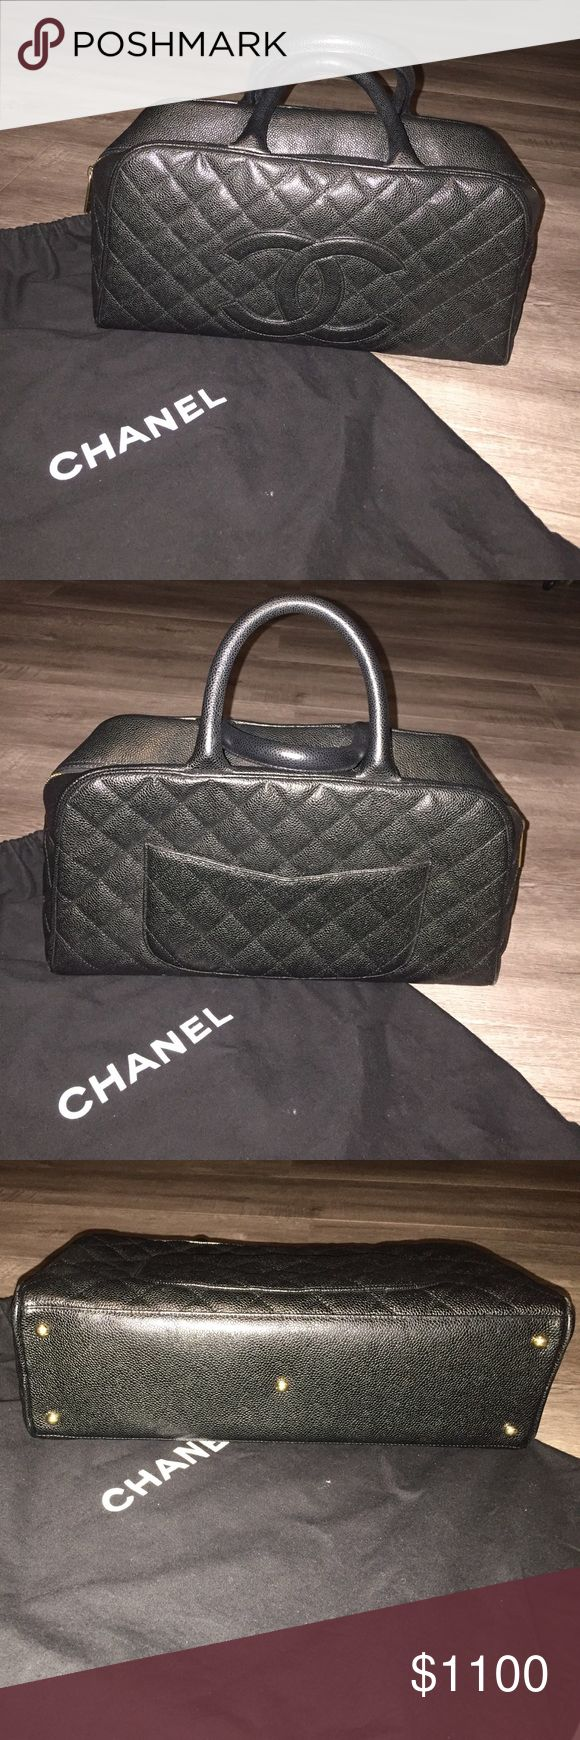 """💯% Authentic Chanel Purse 💯% authentic Chanel purse for sale! In pristine condition. It's been sitting in the closet all these years and has only seen the light of day a few times. There is hardly any wear. Bag comes with authenticity card, which, of course, matches the serial number inside the bag. Comes with dust bag as well. This is a pretty large bag that measures about 14.5"""" W x 5"""" D X 8"""" H. NO TRADES! Price is firm on this app. CHANEL Bags Totes"""